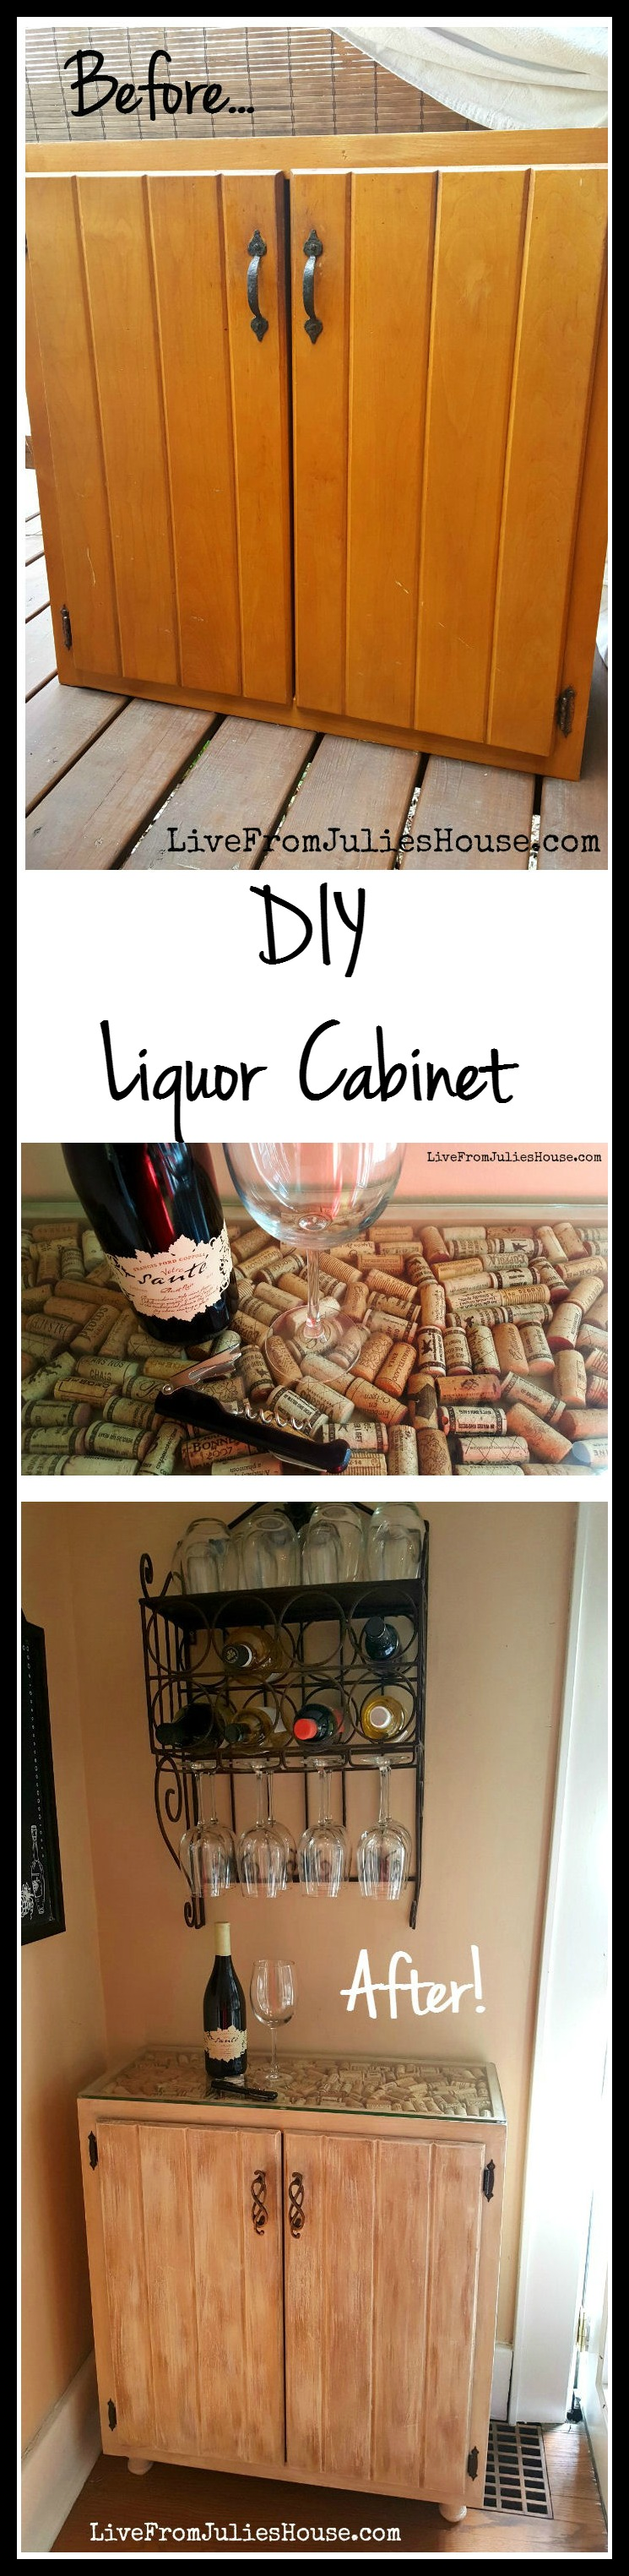 DIY Liquor Cabinet - I created a budget friendly DIY Liquor Cabinet out of a sad looking 1970's kitchen cabinet with the addition of some paint, wine corks and new knobs. It was easy!